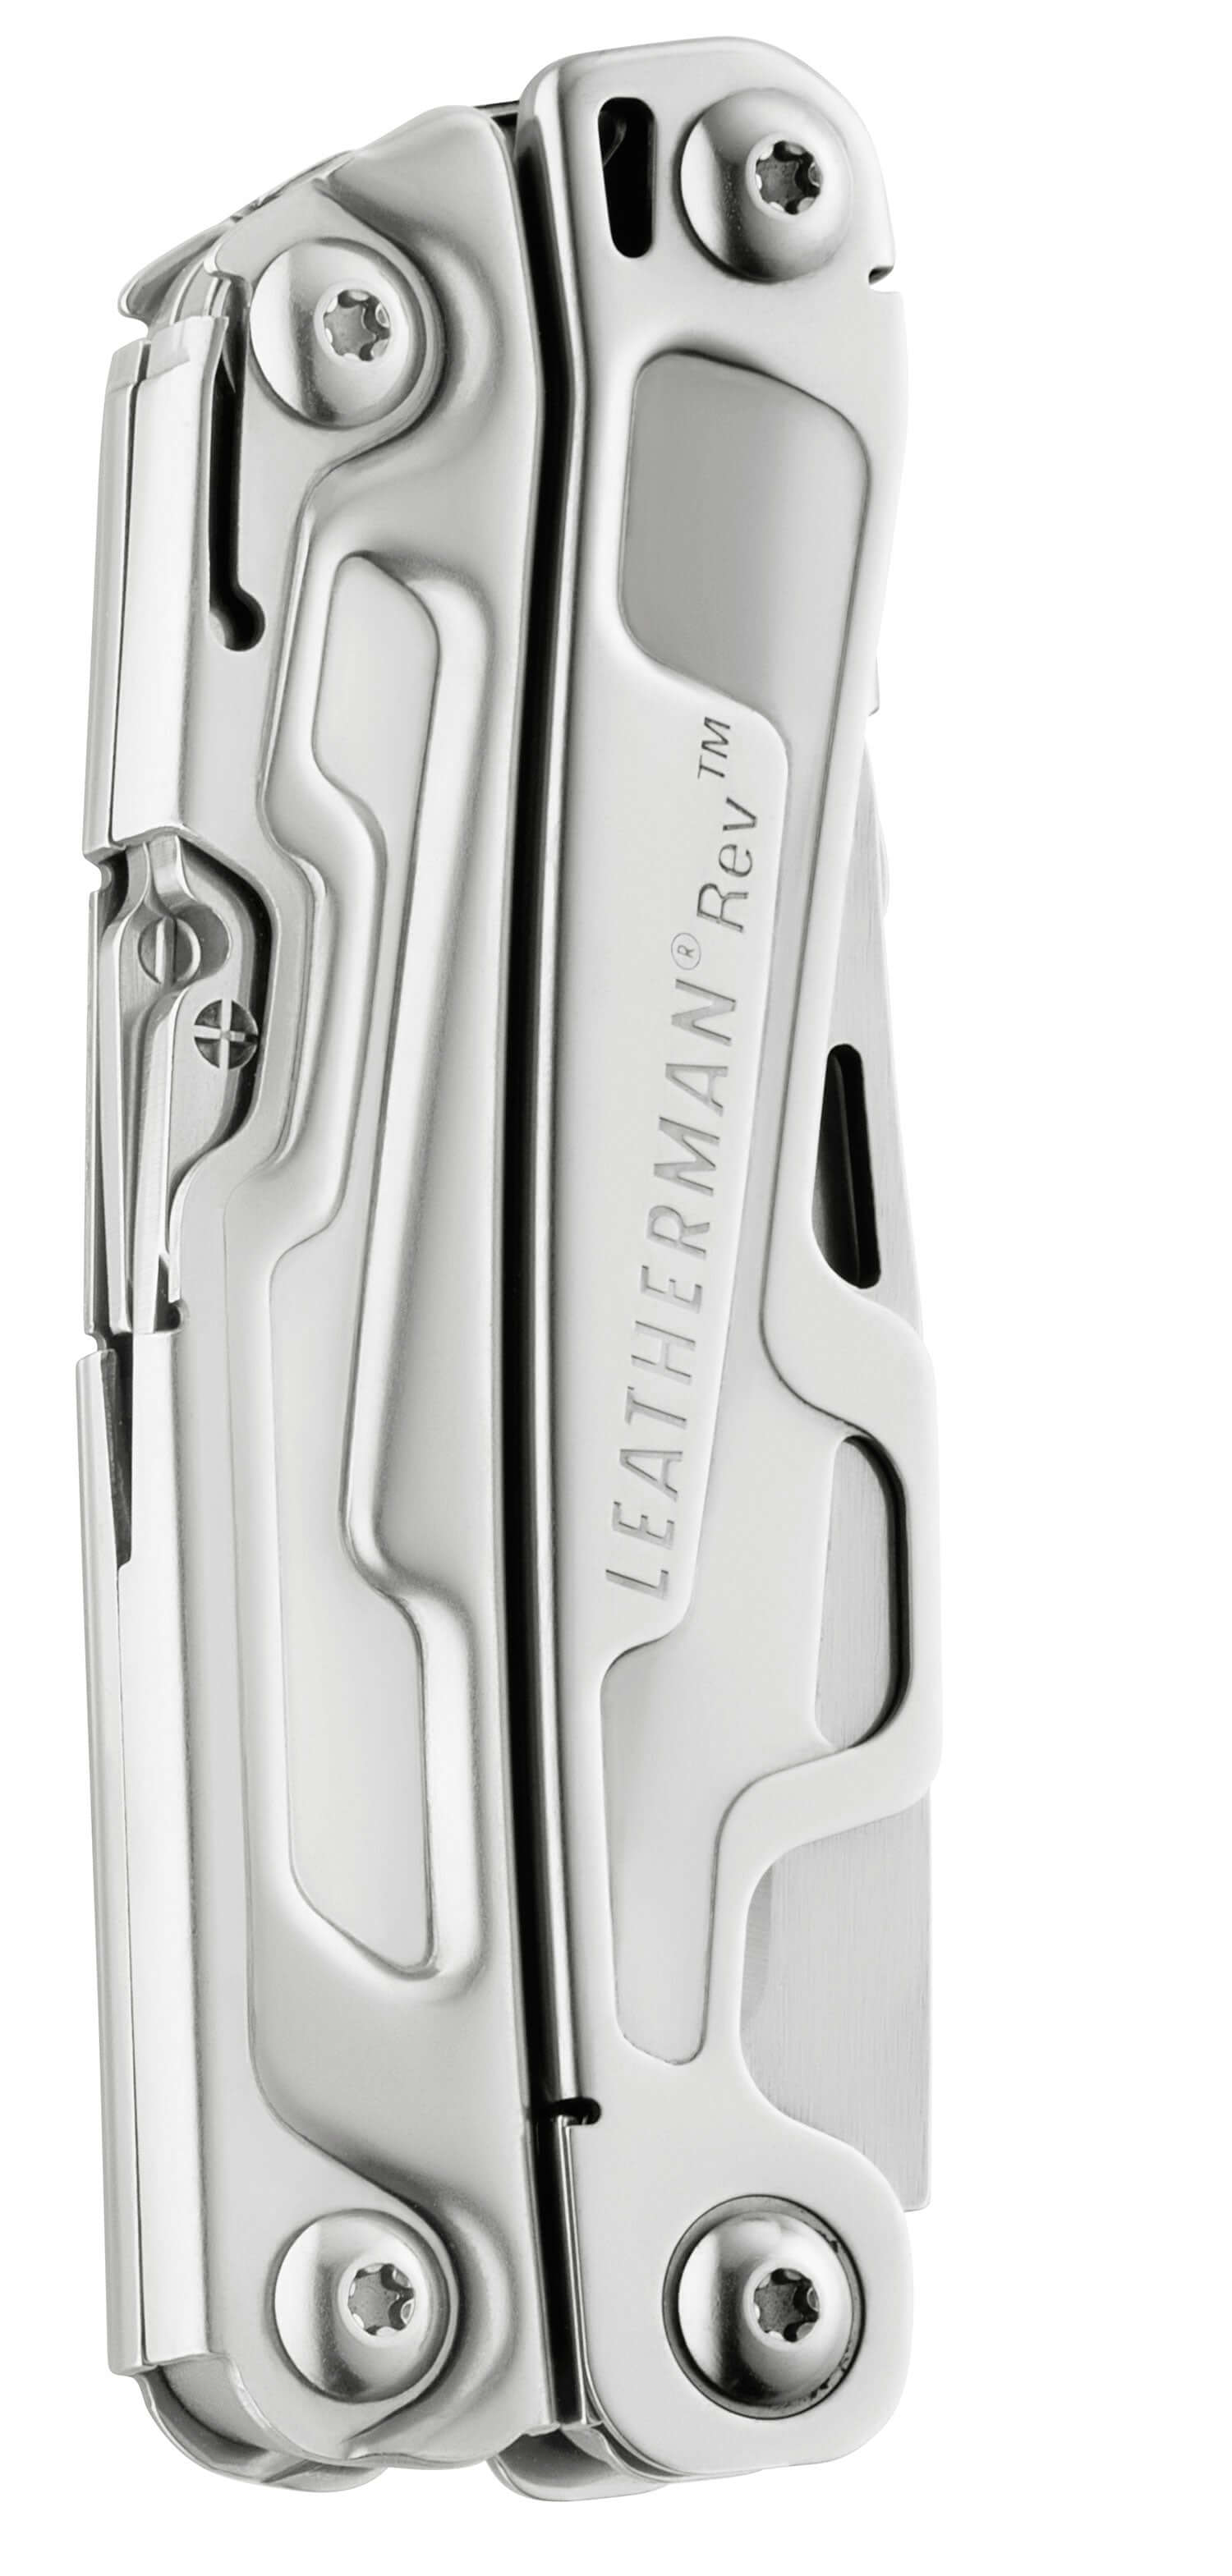 folded Leatherman Rev Multi-Tool - Stainless Steel